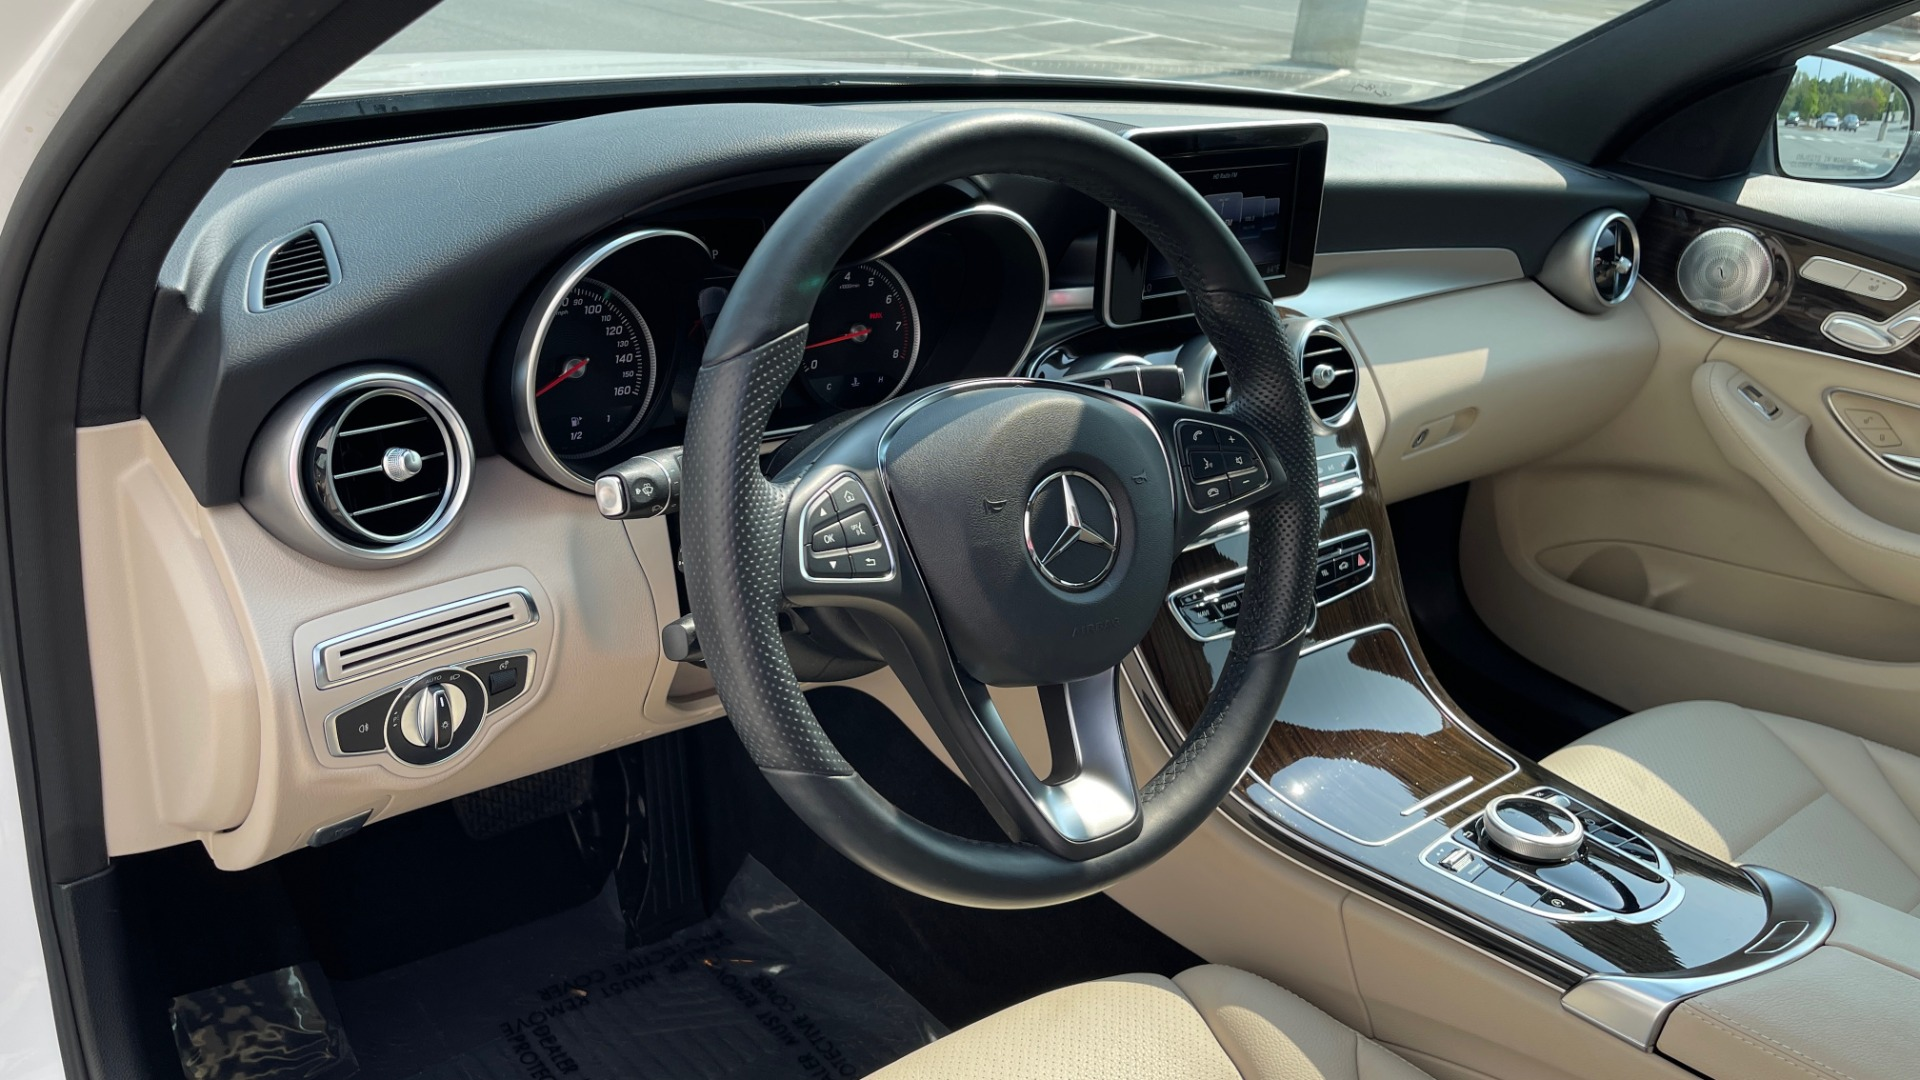 Used 2018 Mercedes-Benz C-Class C 300 4MATIC / PREMIUM / BURMESTER / HTD STS / SUNROOF / REARVIEW for sale $33,995 at Formula Imports in Charlotte NC 28227 26